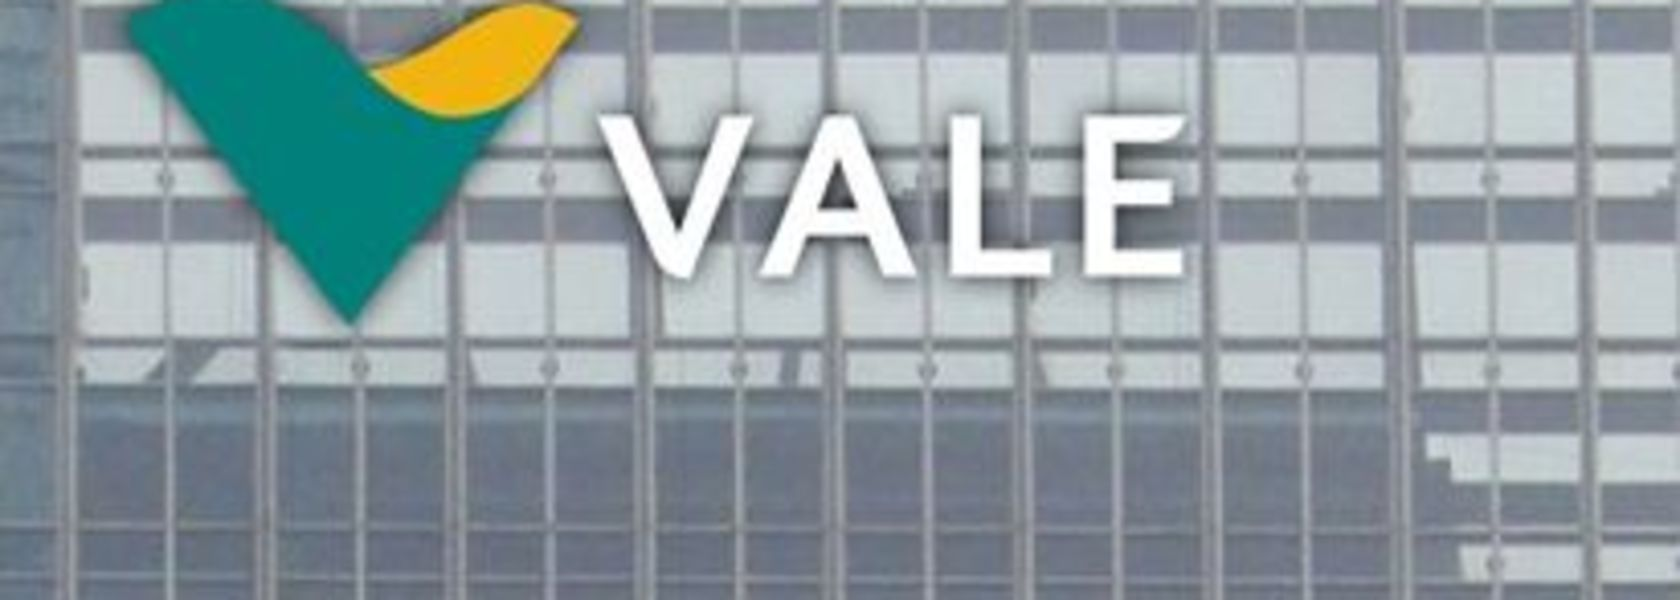 Vale profit drops alongside debt in March quarter